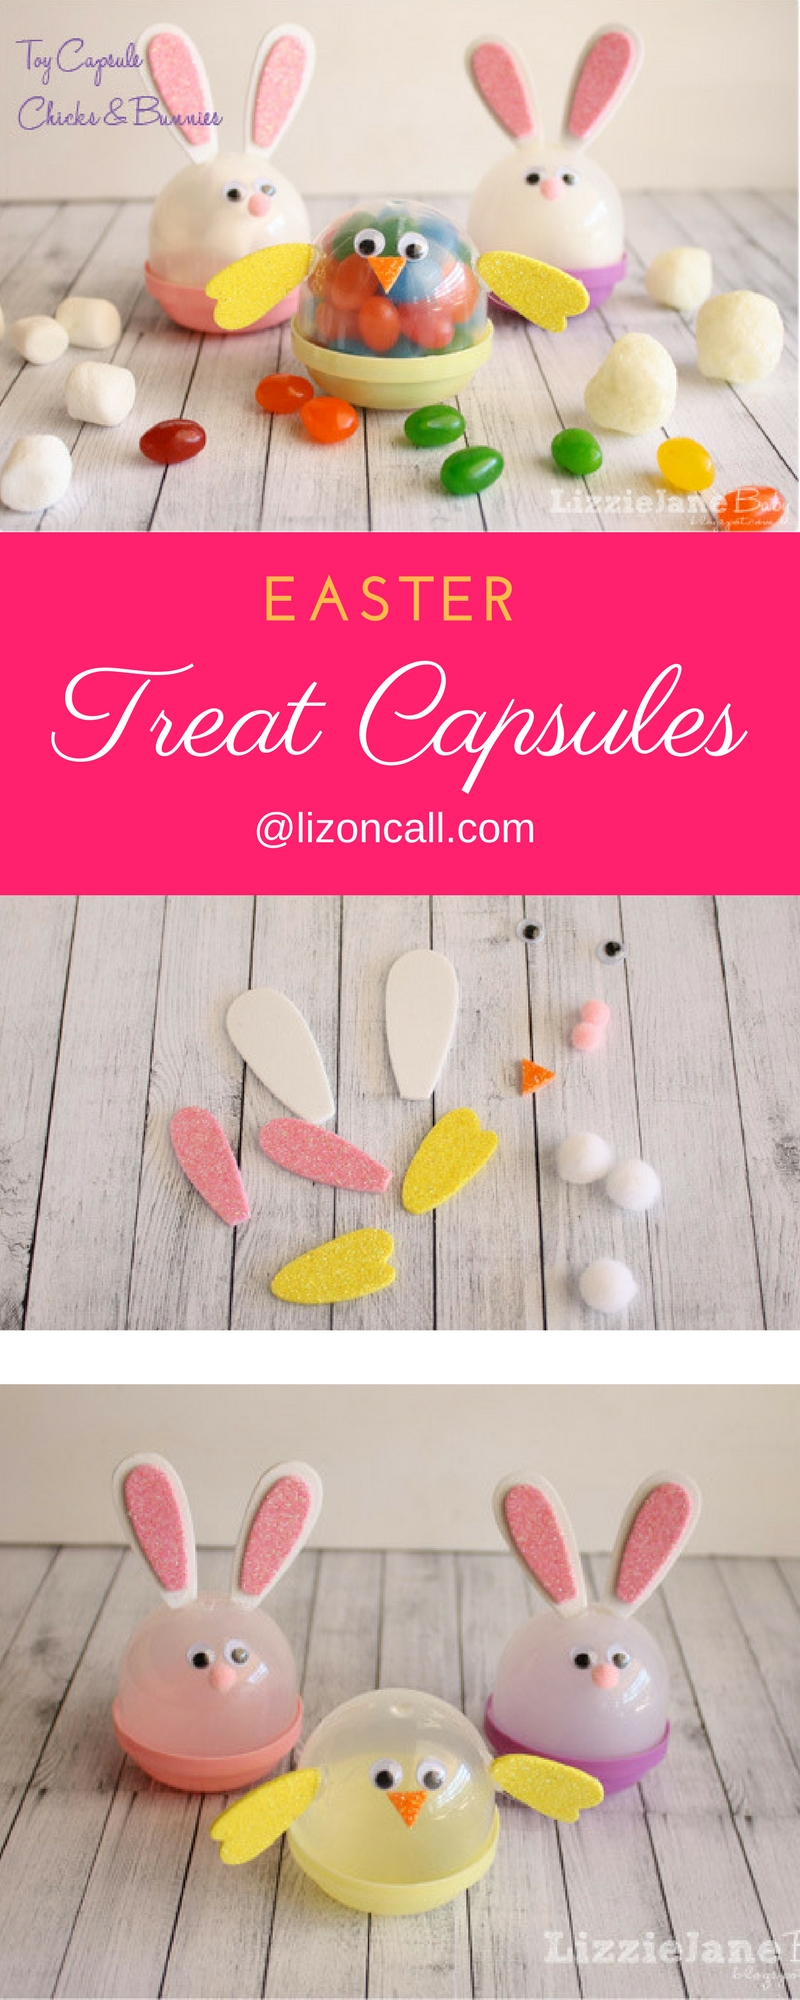 These toy capsule Easter characters are a fun activity to make with the kids.